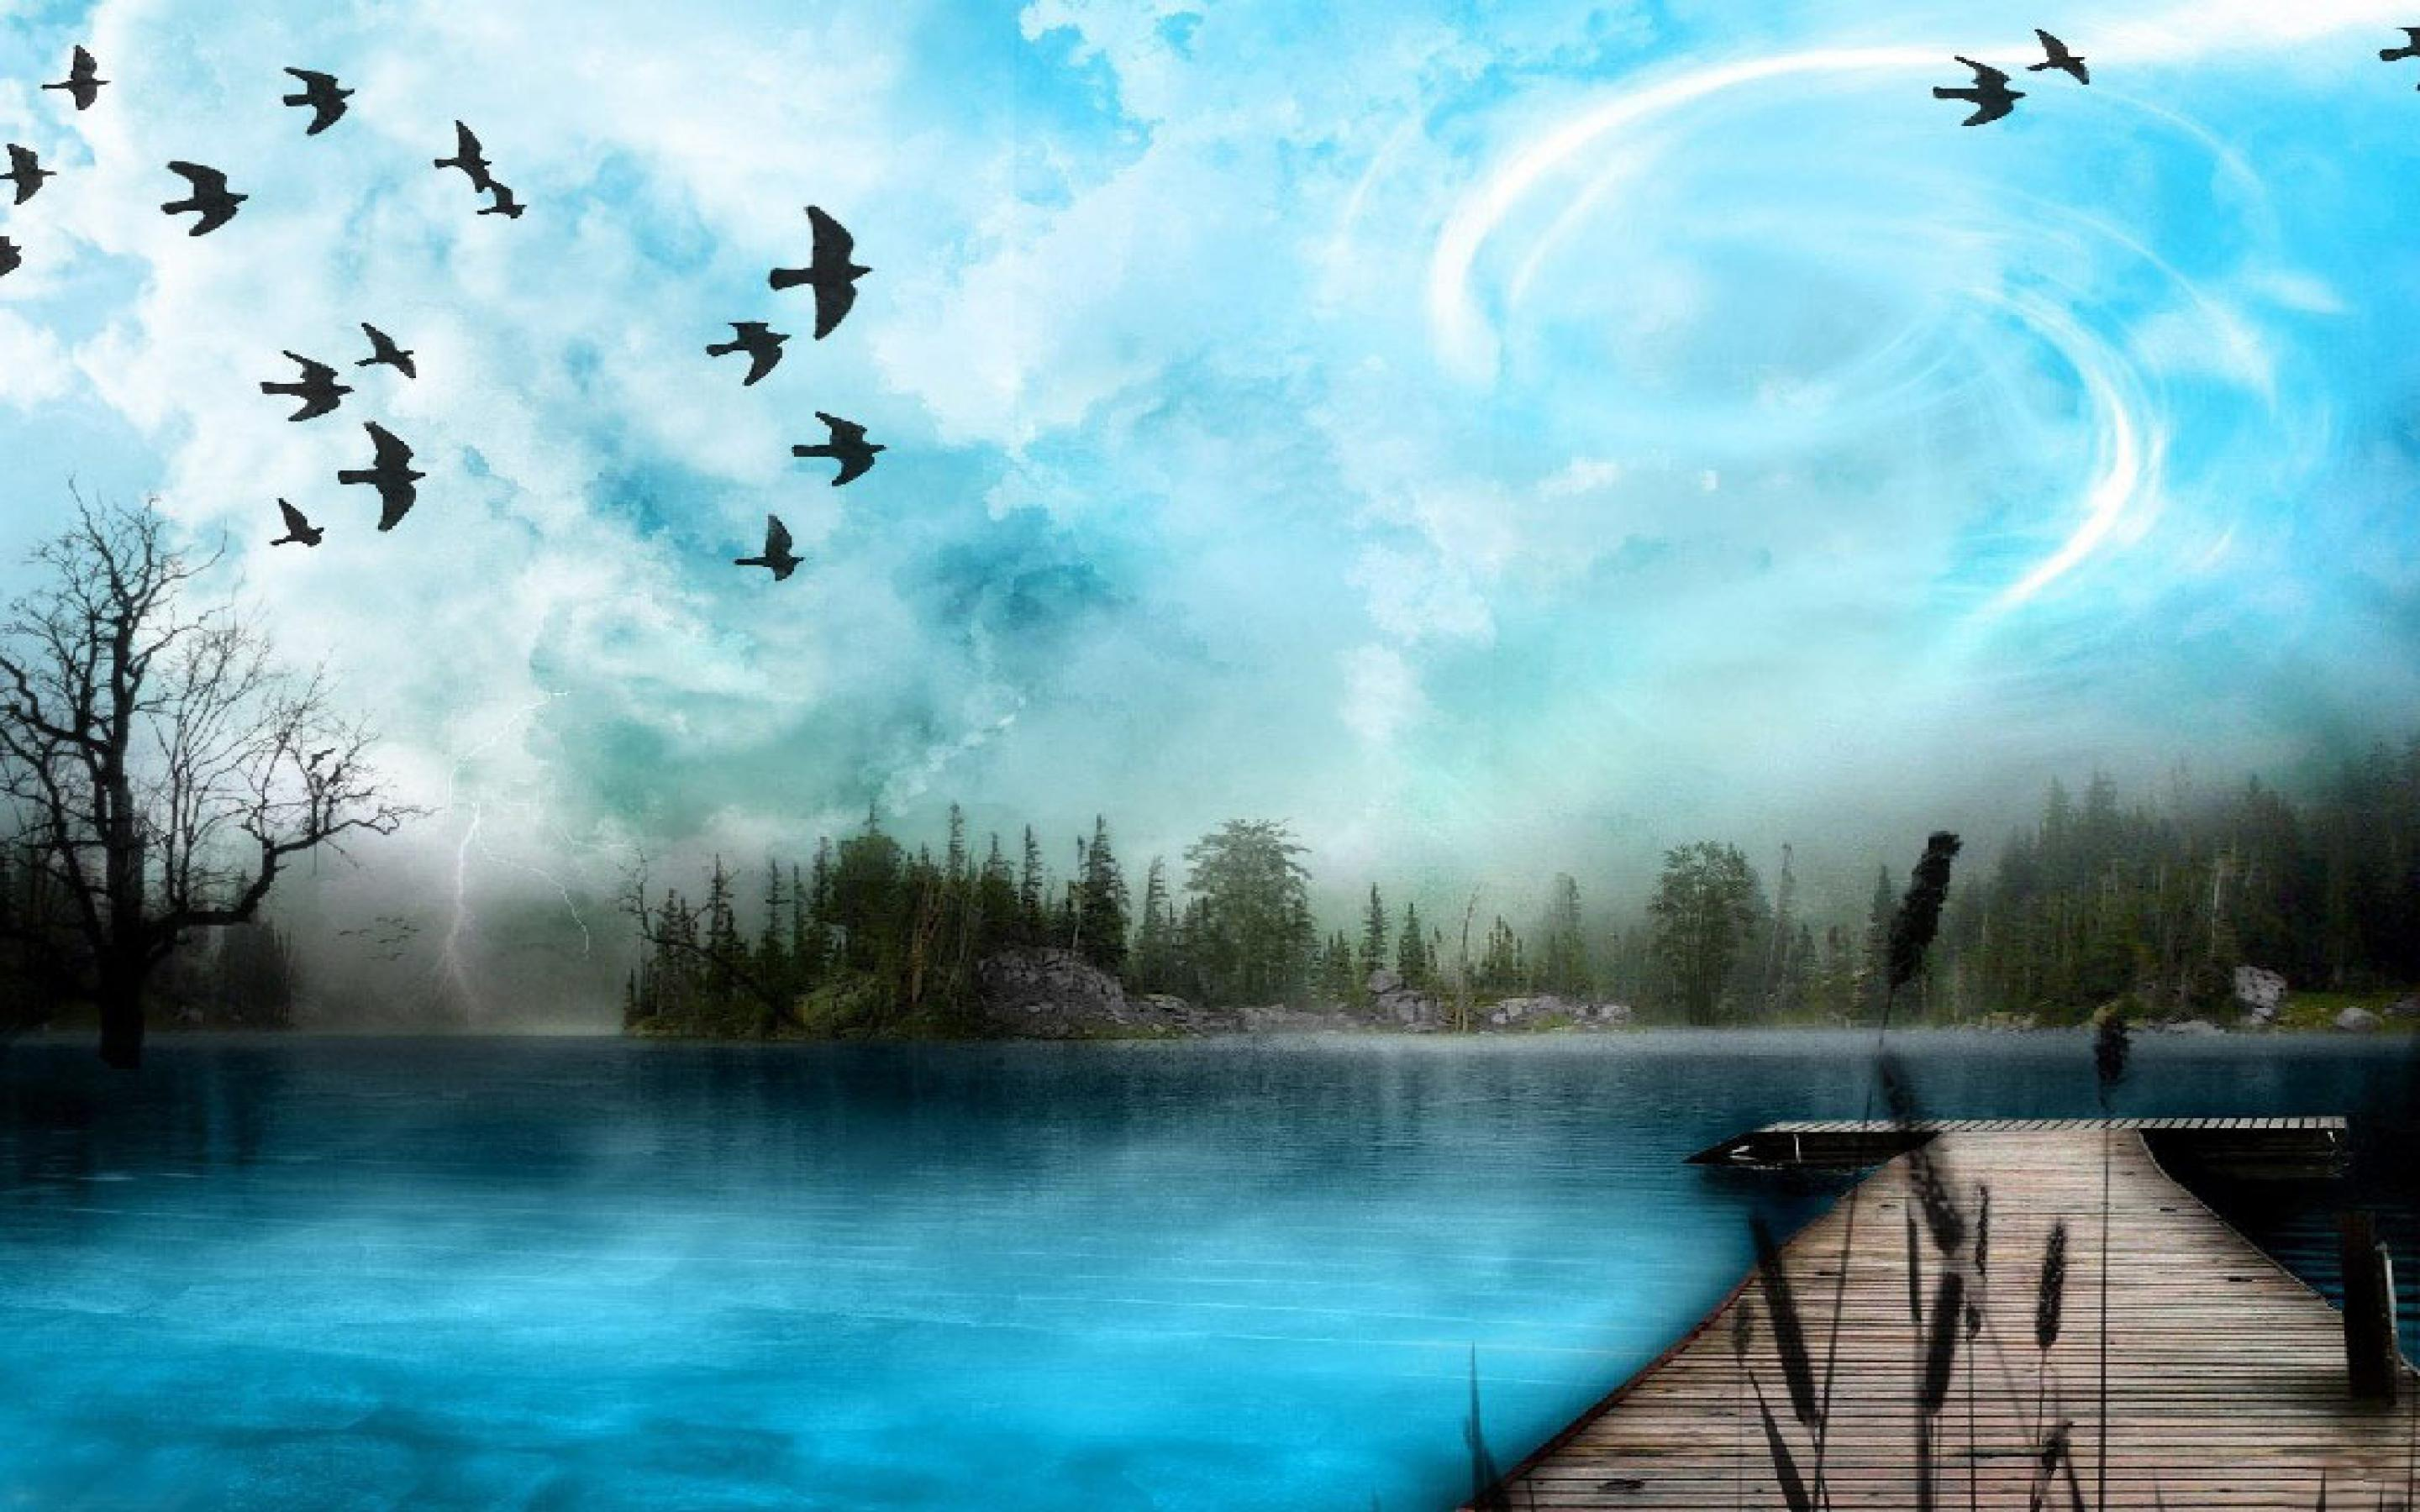 blue sky HD Wallpapers 2880x1800 Nature Landscape Wallpapers 2880x1800 2880x1800